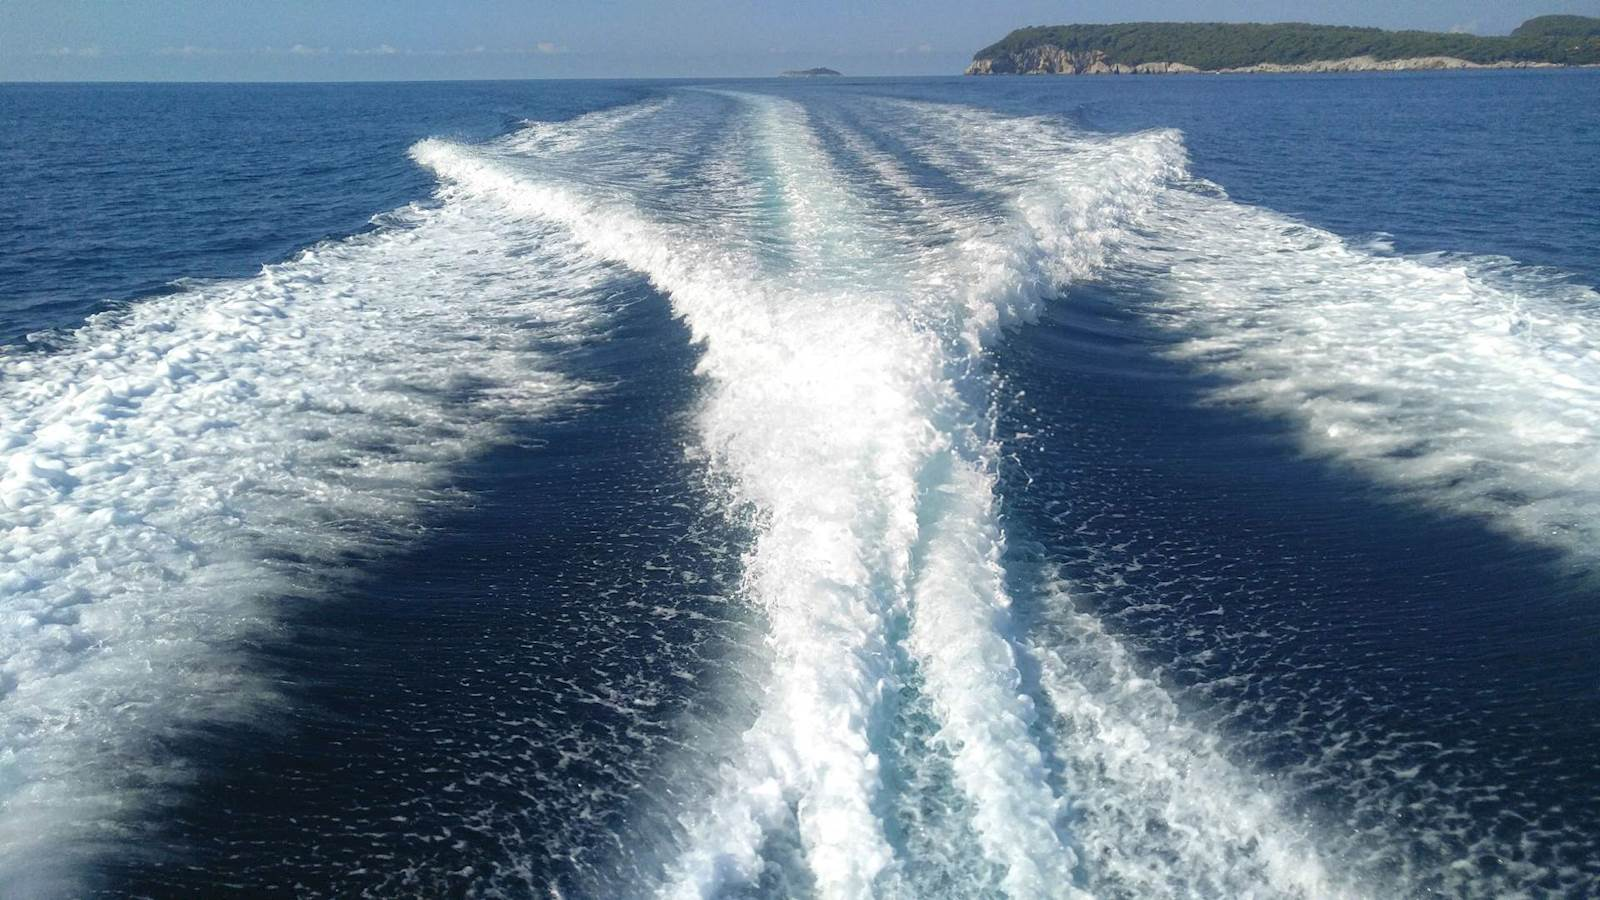 -images-excursions-elaphite-islands-speed-boat-excursion-zy-03-private-boat-tour-dubrovnik-elafiti.jpg